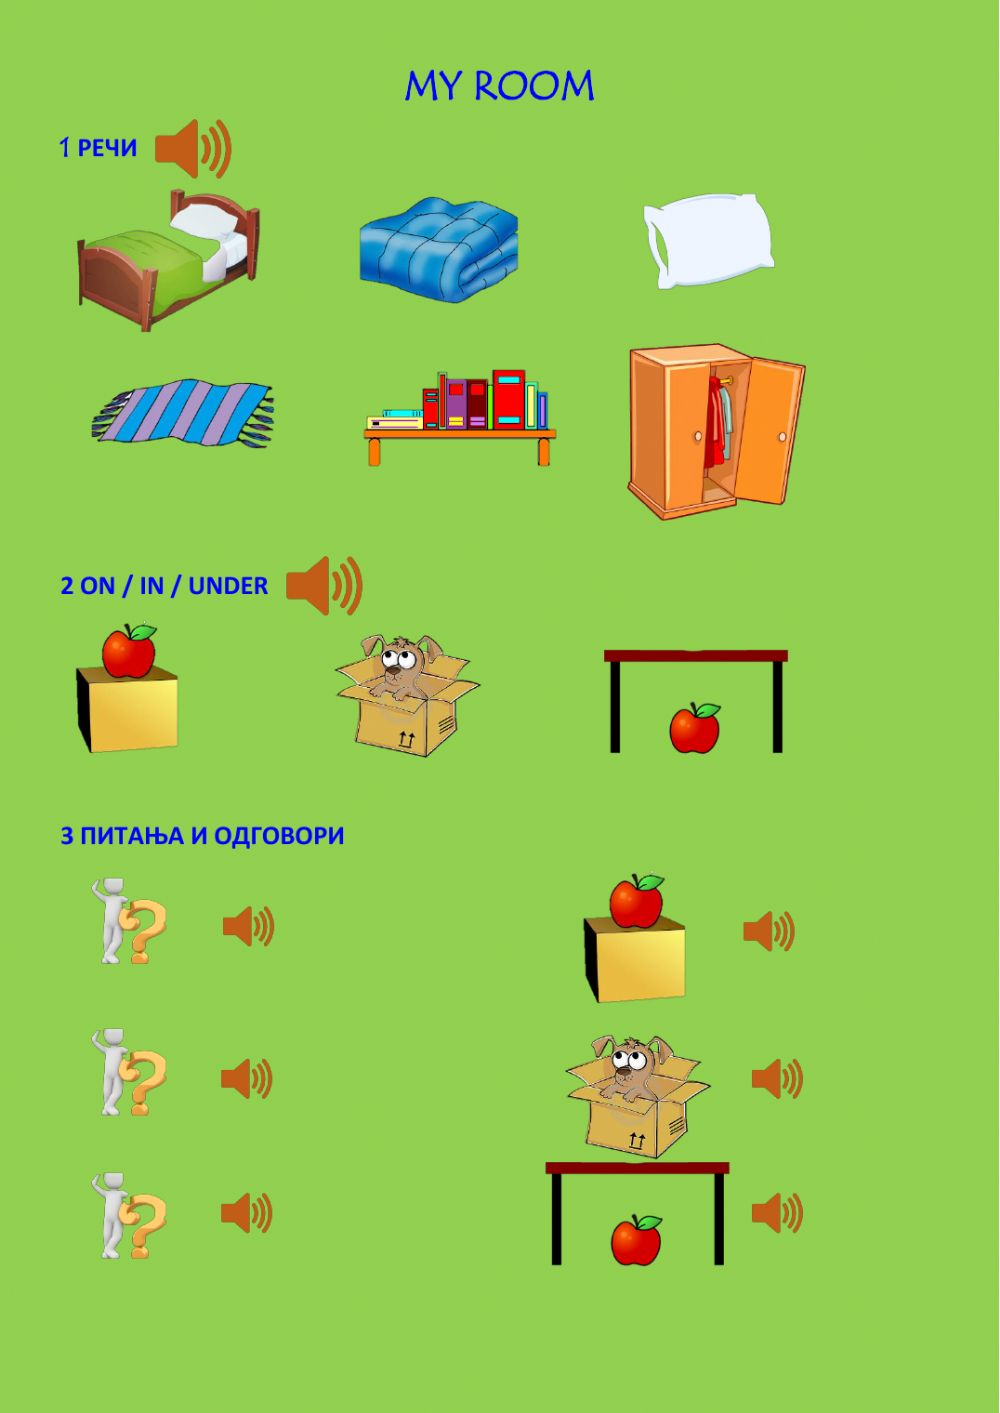 My Room activity for Grade 1